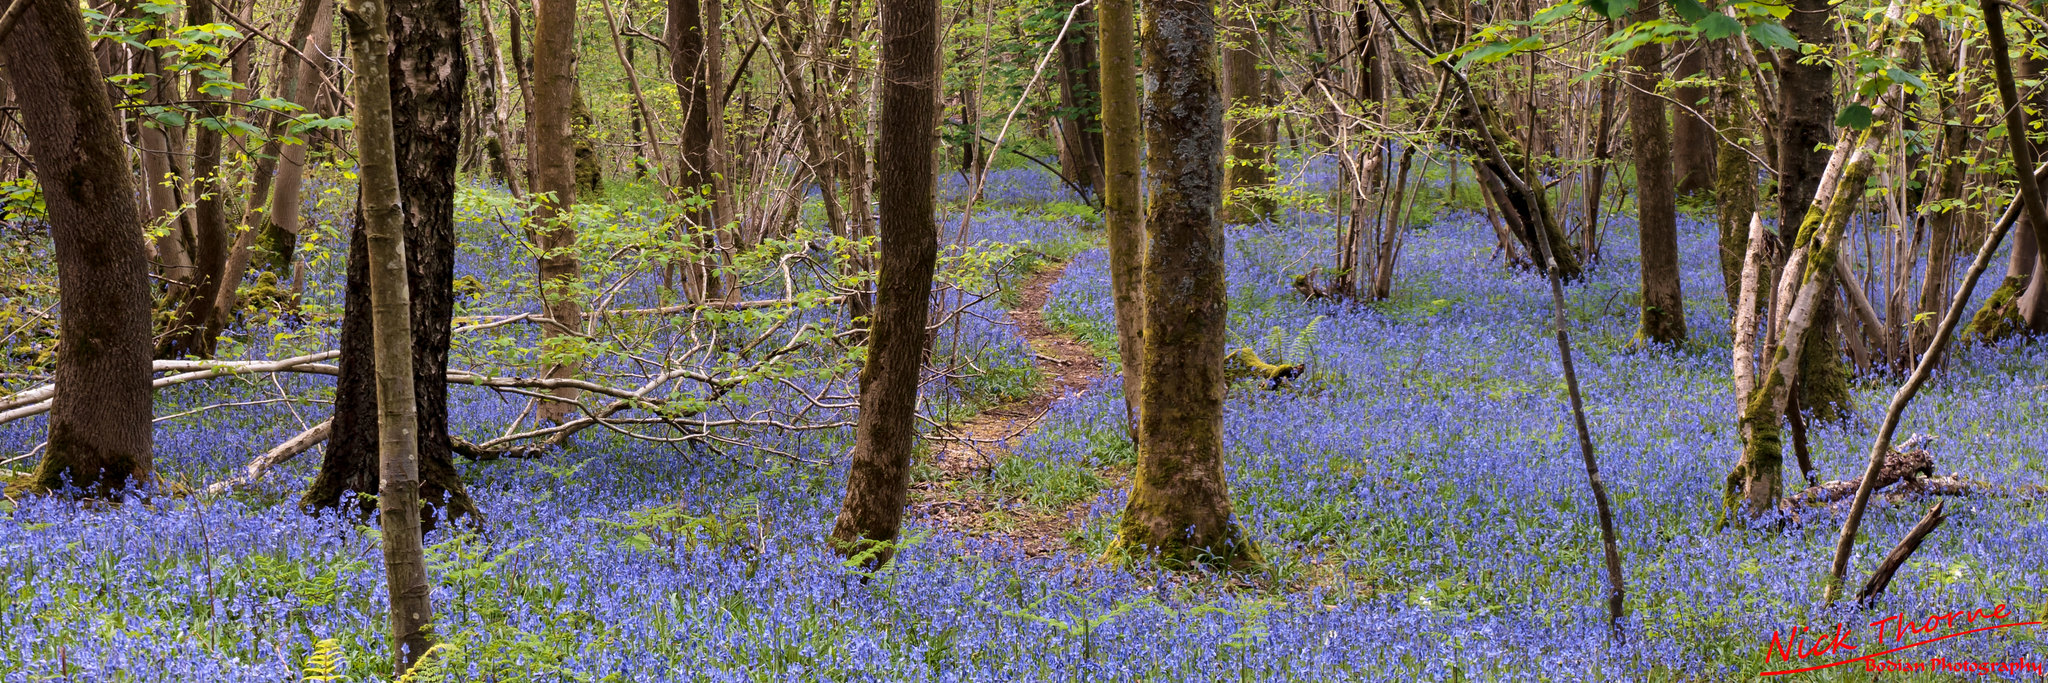 Bluebell Walk.jpg